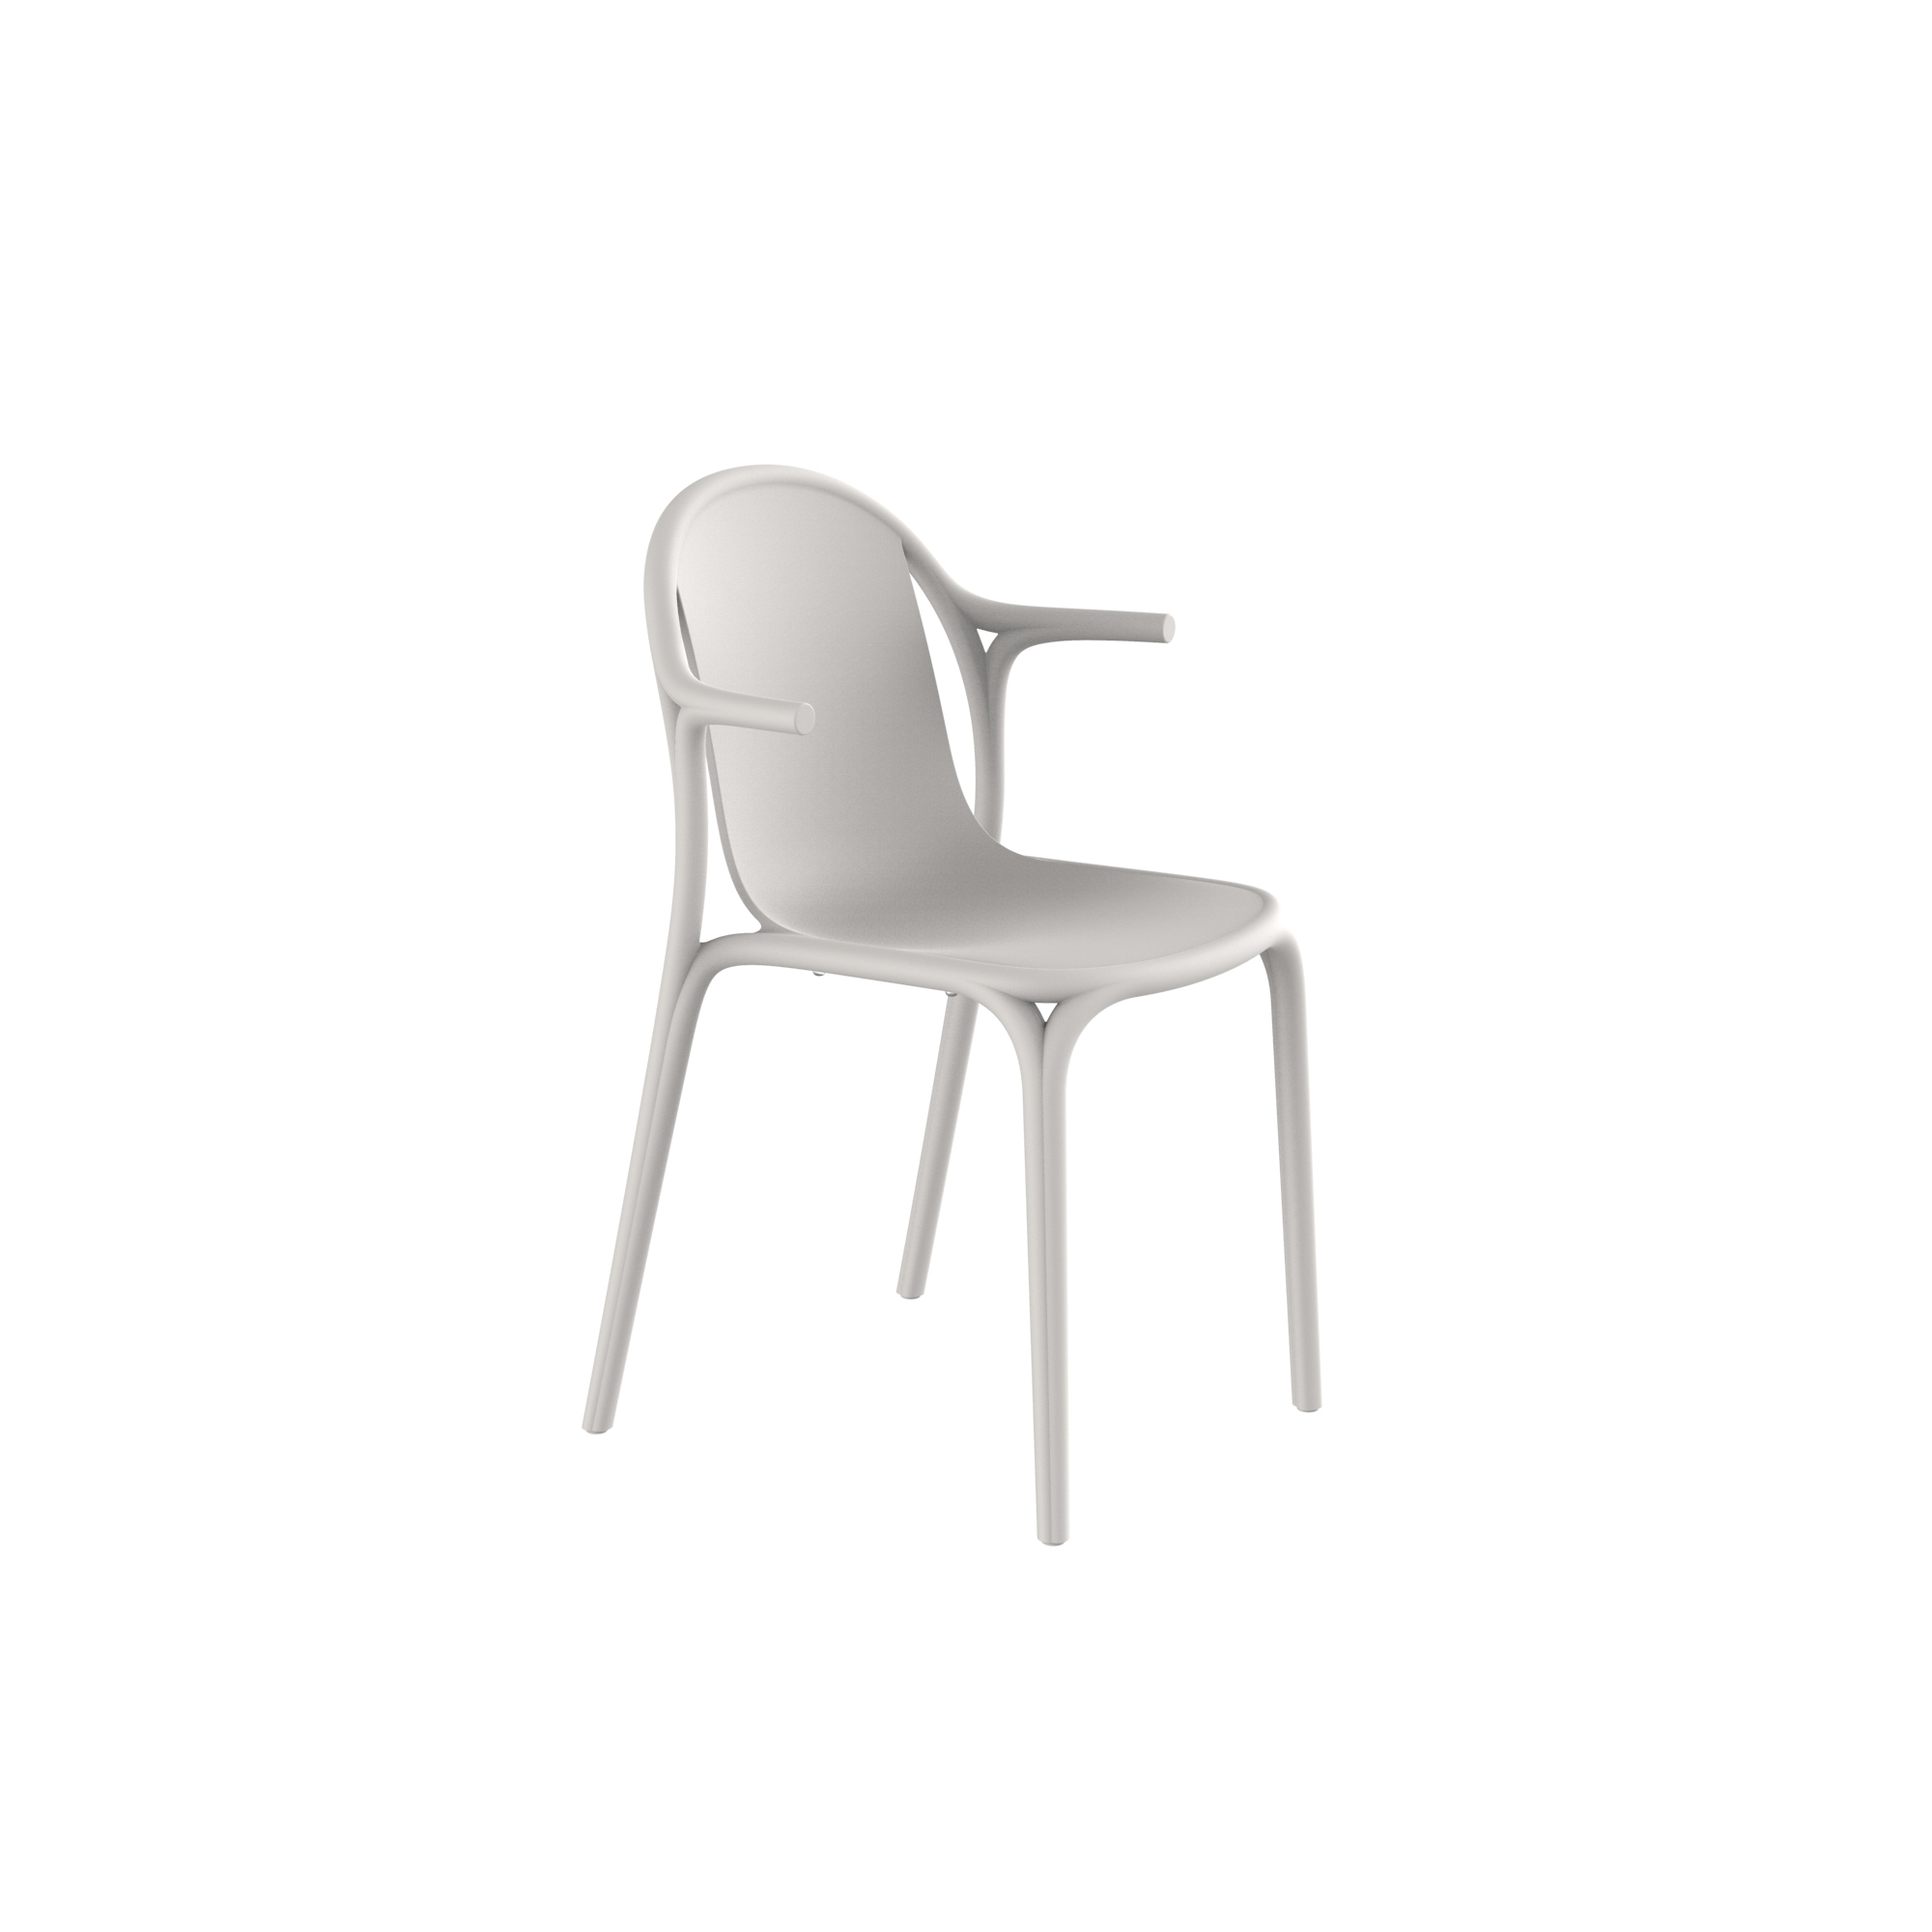 BROOKLYN_CHAIR_OUTDOOR_DESIGN_EUGENI_QUITLLET_VONDOM_SILLA_DISENO_EXTERIOR (1)